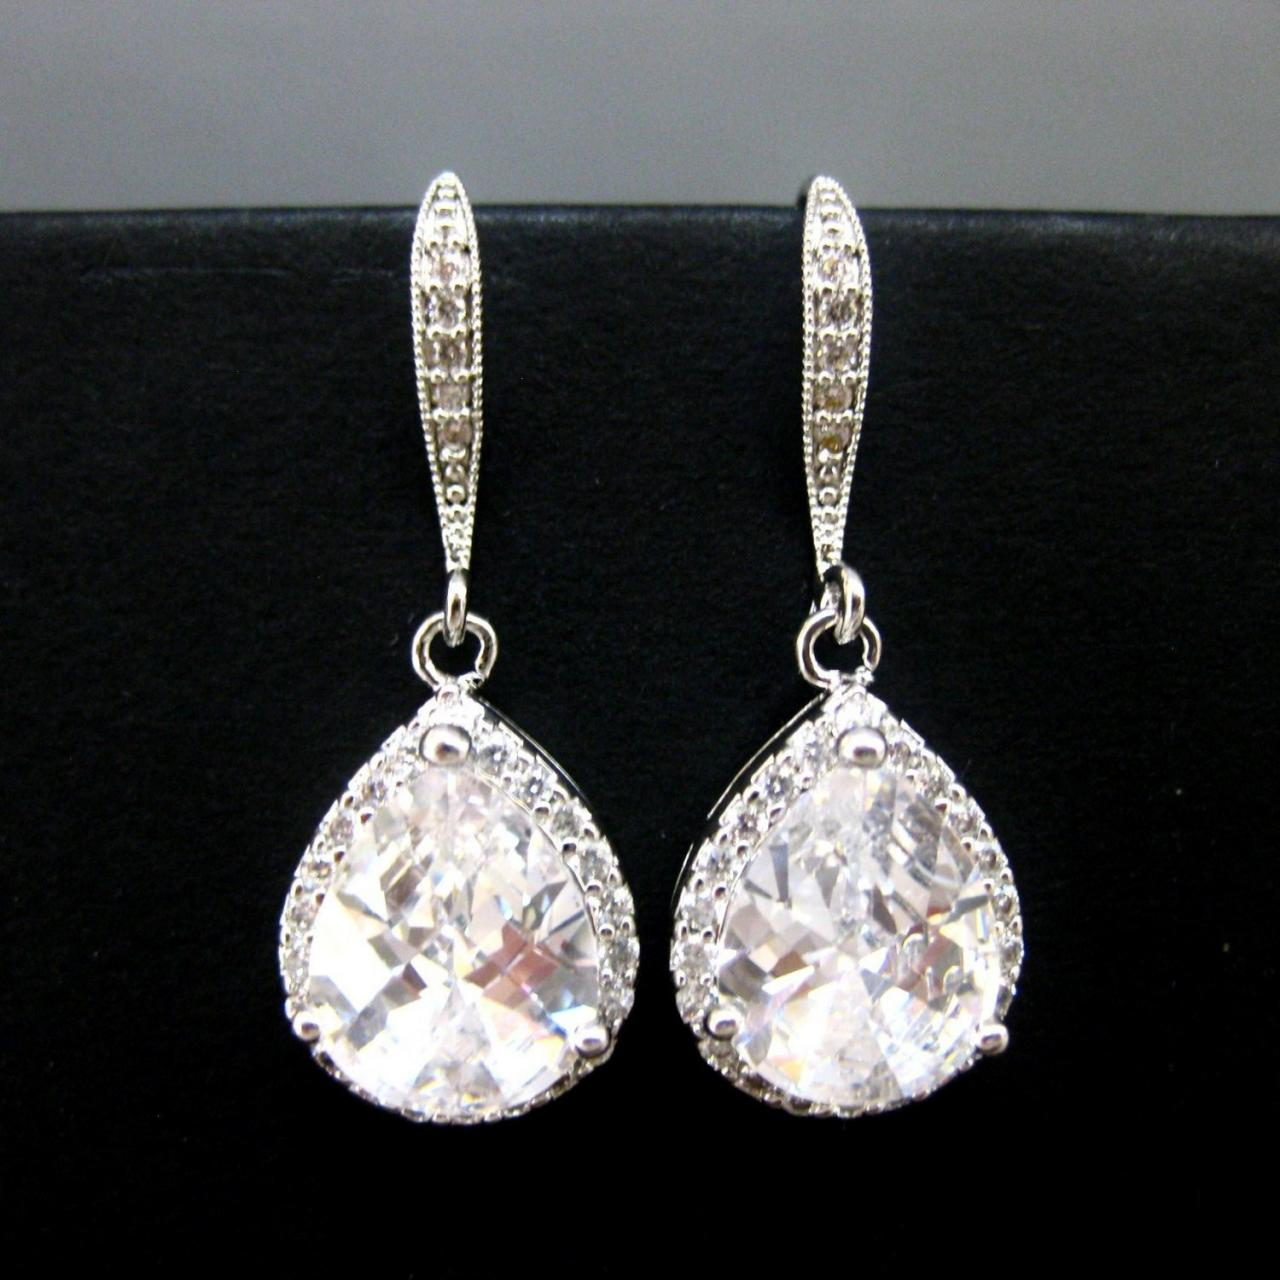 Lux Cubic Zirconia Earrings Teardrop Earrings Bridal Crystal Earrings Wedding Jewelry Bridesmaids Gift Sparky Earrings (E032)